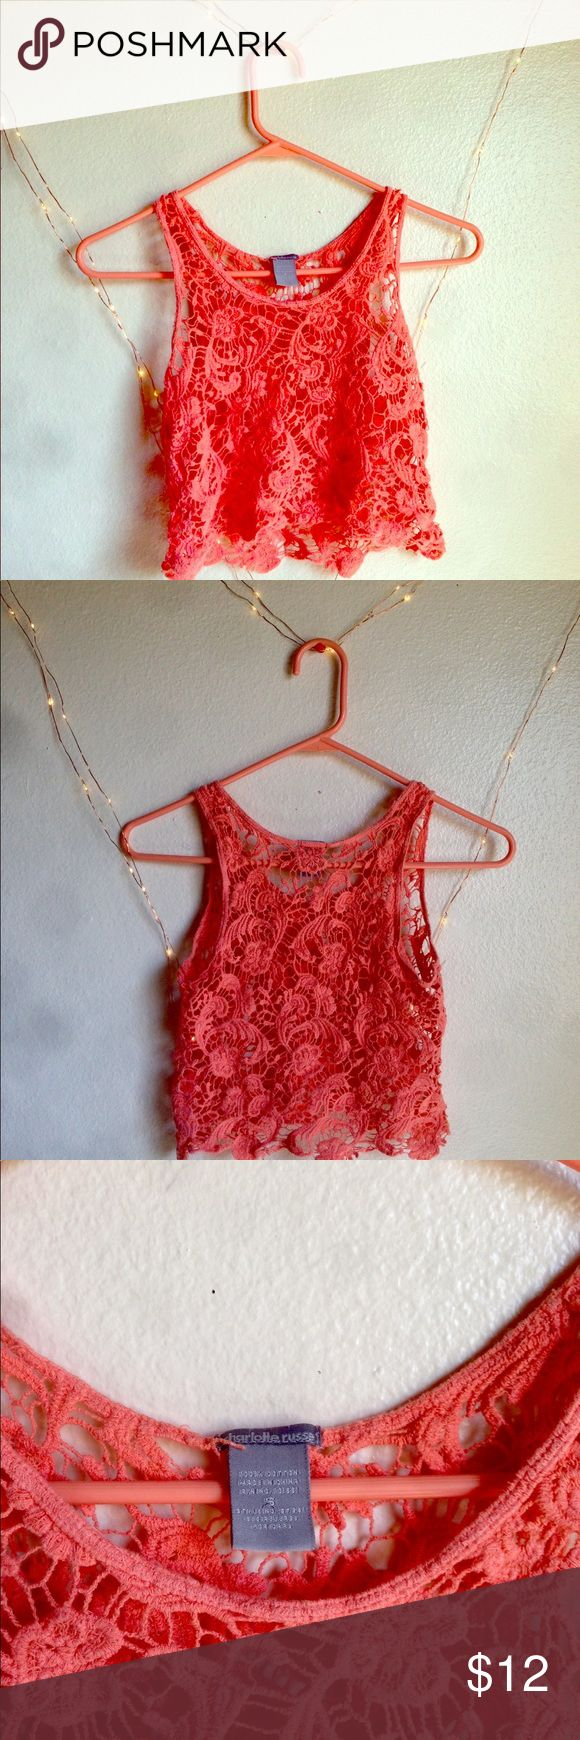 Crotchet Lacey Coral Crop Top Flowy bright crop top perfect for a beach day as bikini top cover or paired with a tank top inside to go with shorts. Be creative!  Fits true to size.  Please message me for more information if you're interested!  #guess #coral #creamy #layering #tanktop #beachbabe #beachwear #summer #fresh #cool #spring #lace #eyelet #sporty #stringytop #striped #yellow #white #cute #lovely #hot #chic #sexy #littlewhitetop #girly #floral #flowy #colorful #secretangels #openback…